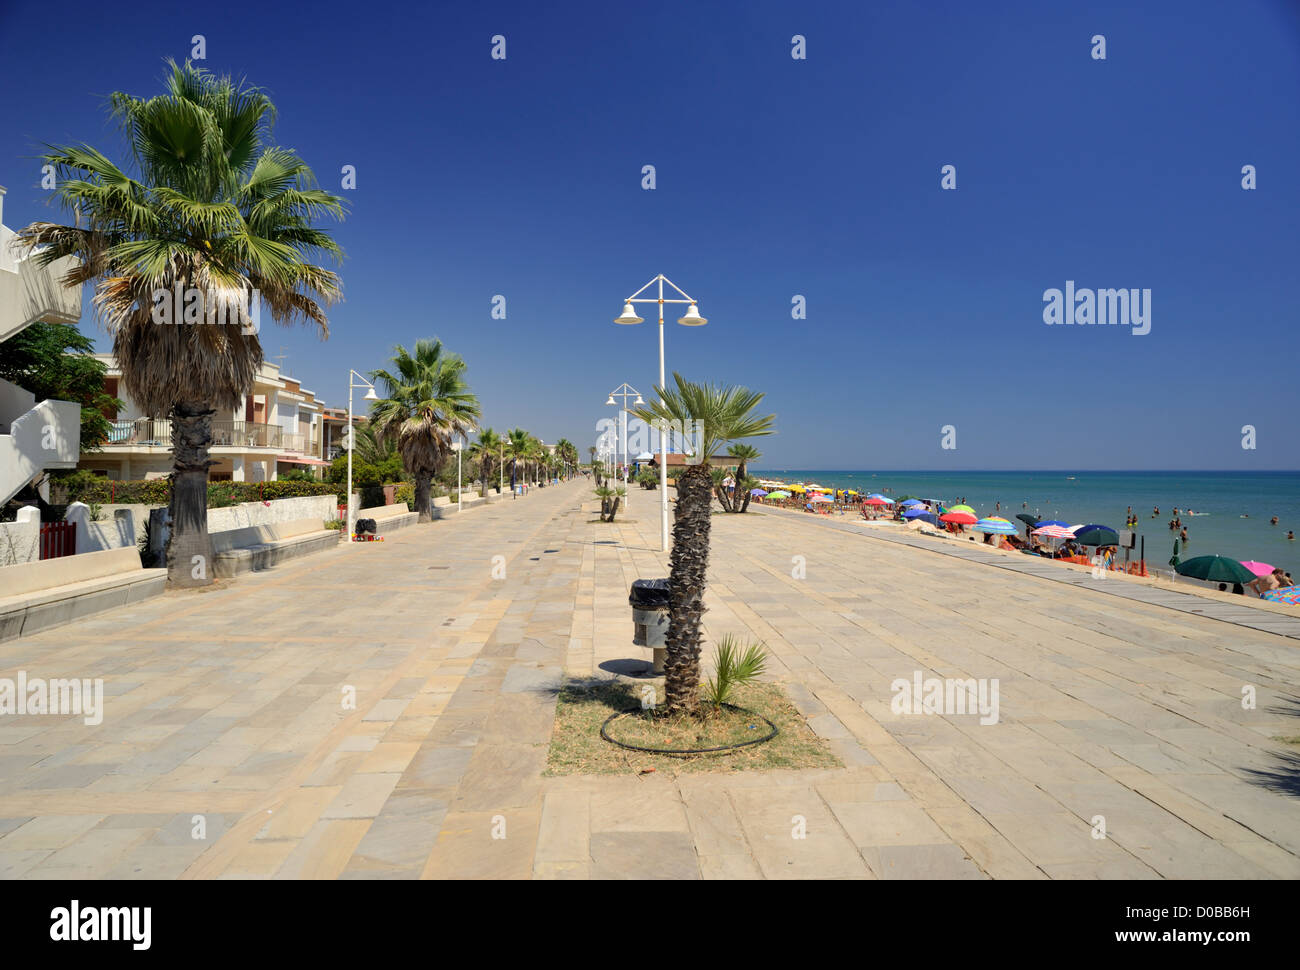 italy, basilicata, metaponto, promenade and beach - Stock Image